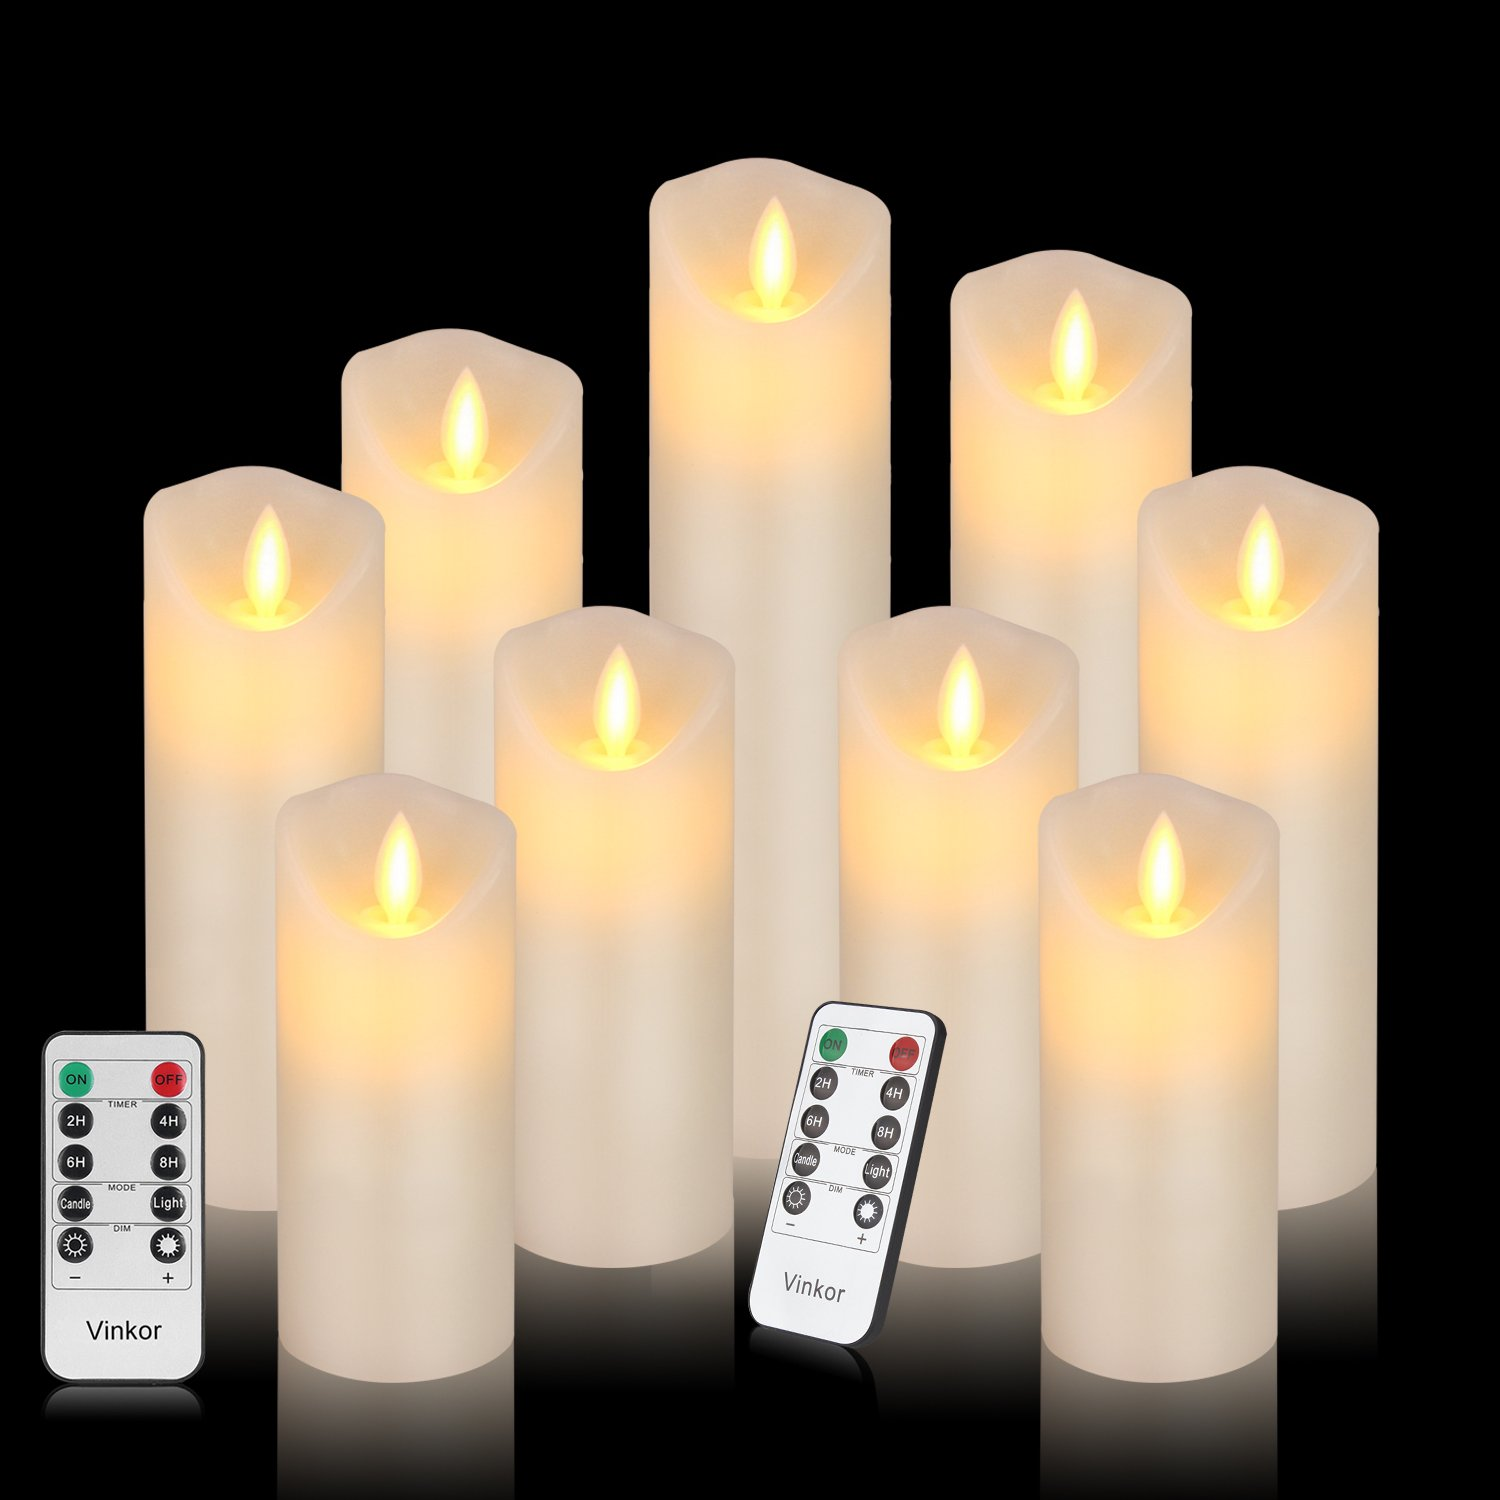 Vinkor Flameless Candles Led Candles Set of 9(H 4'' 5'' 6'' 7'' 8'' 9'' xD 2.2'') Ivory Real Wax Battery Operated Candles with Moving LED Flame & 10-Key Remote Control 2/4/6/8 Hours Timer by Vinkor